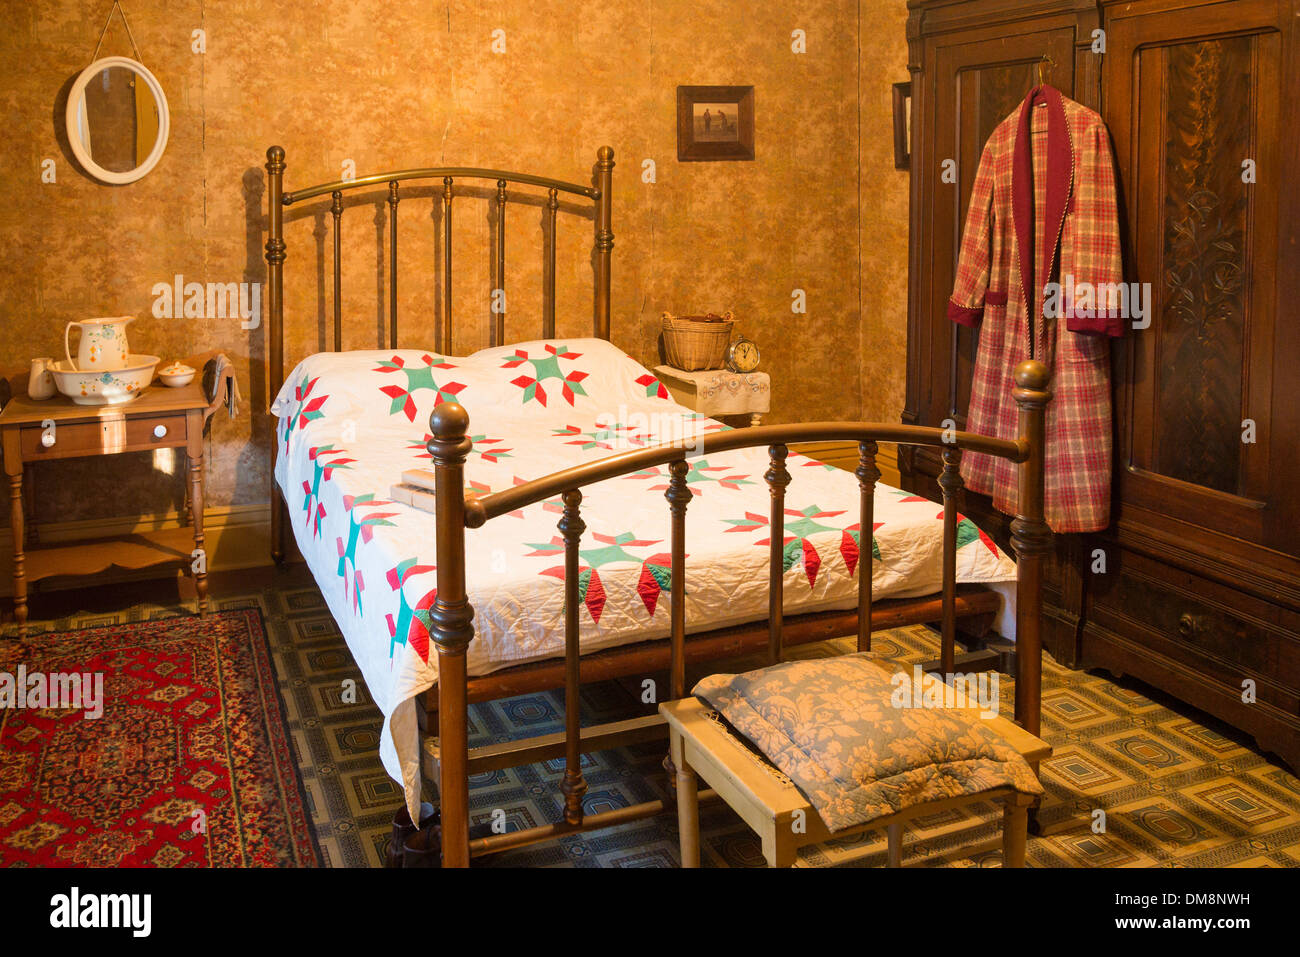 Bed Quilt Imágenes De Stock & Bed Quilt Fotos De Stock - Alamy